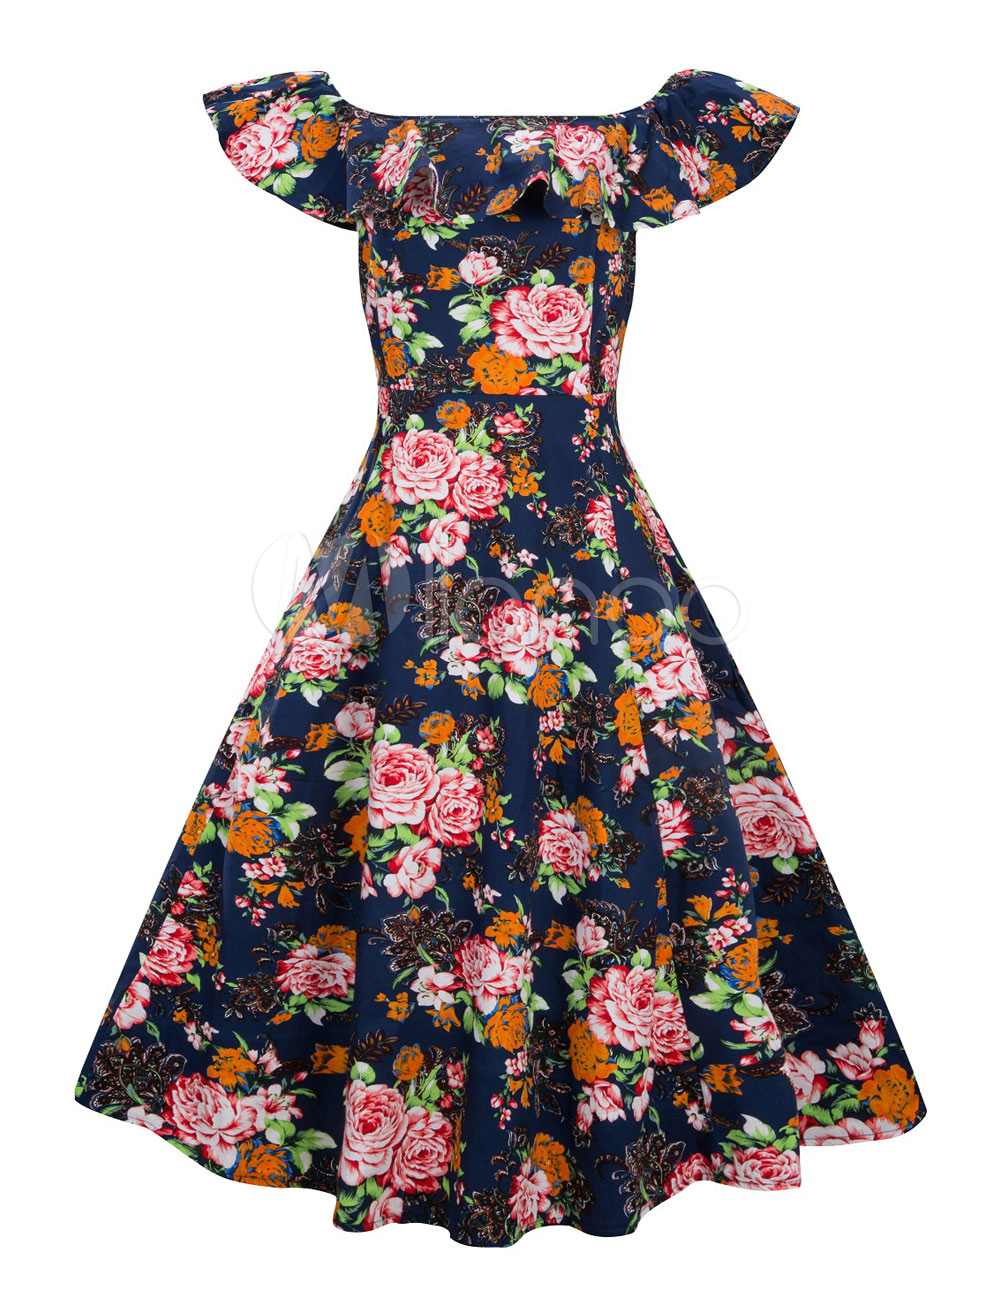 Buy Summer Vintage Dress Short Sleeve 1950s Off The Shoulder Floral Print Retro Swing Dress for $26.34 in Milanoo store